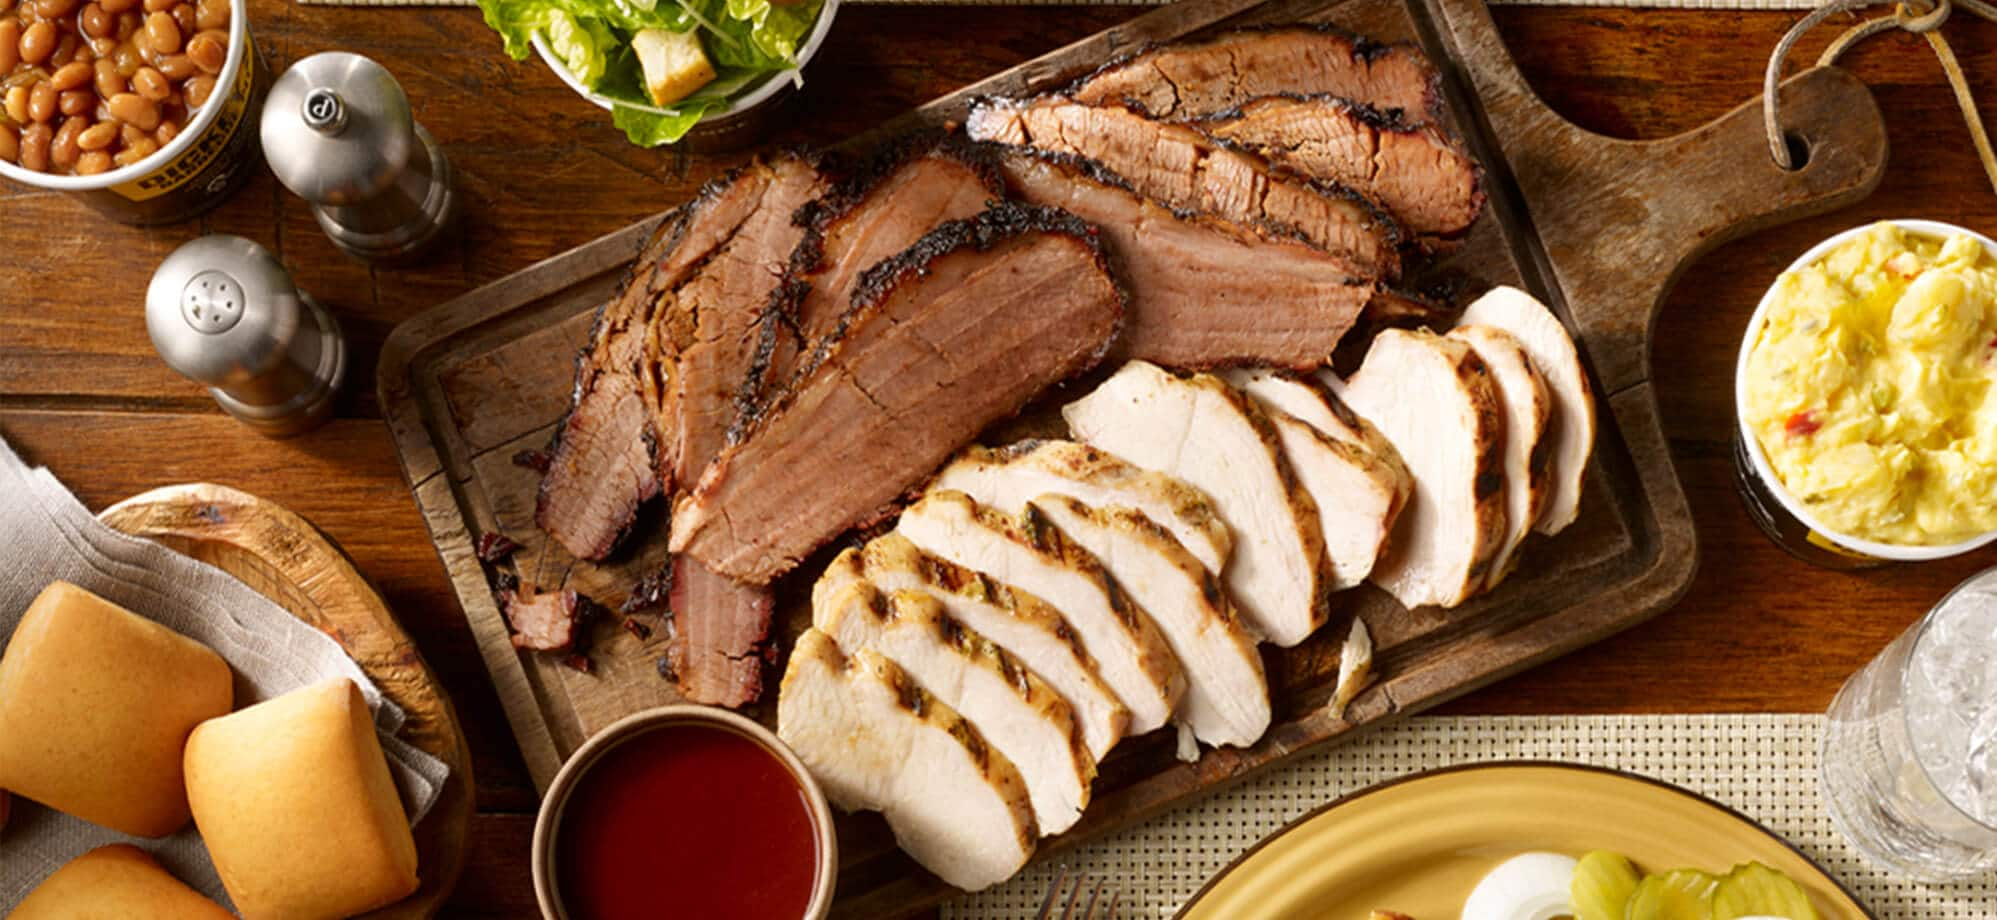 Barbecue at Dickey's Barbecue Pit